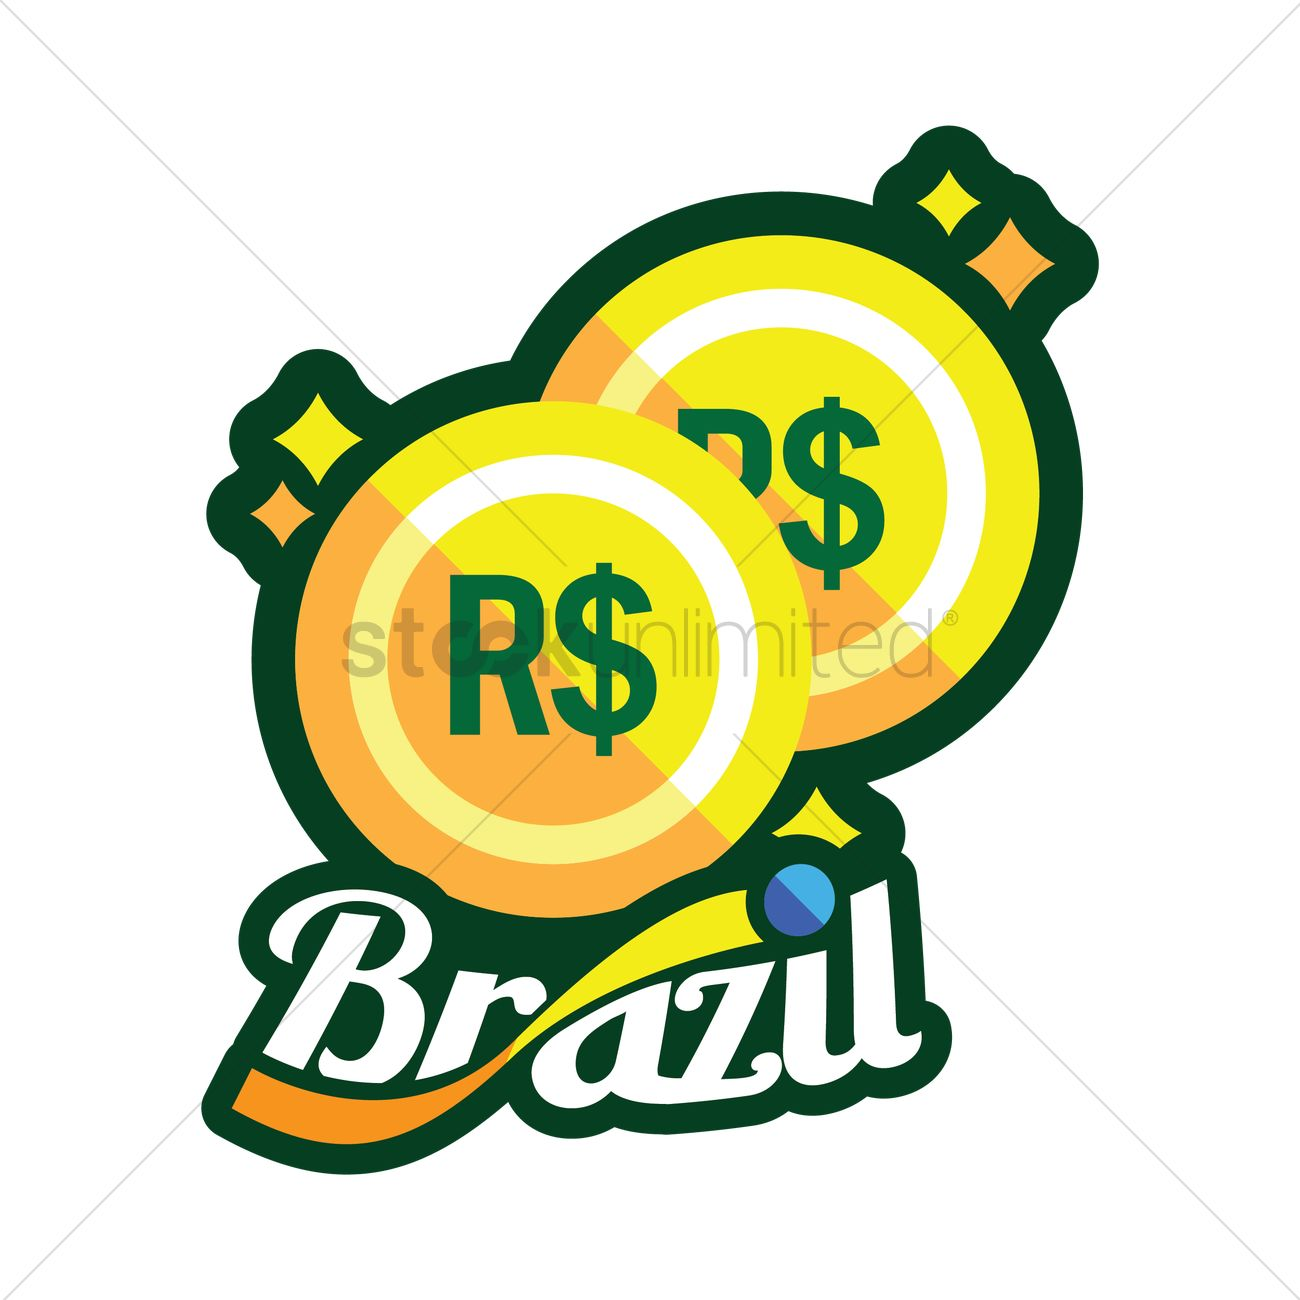 Brazilian Real Coin Vector Image 1571965 Stockunlimited